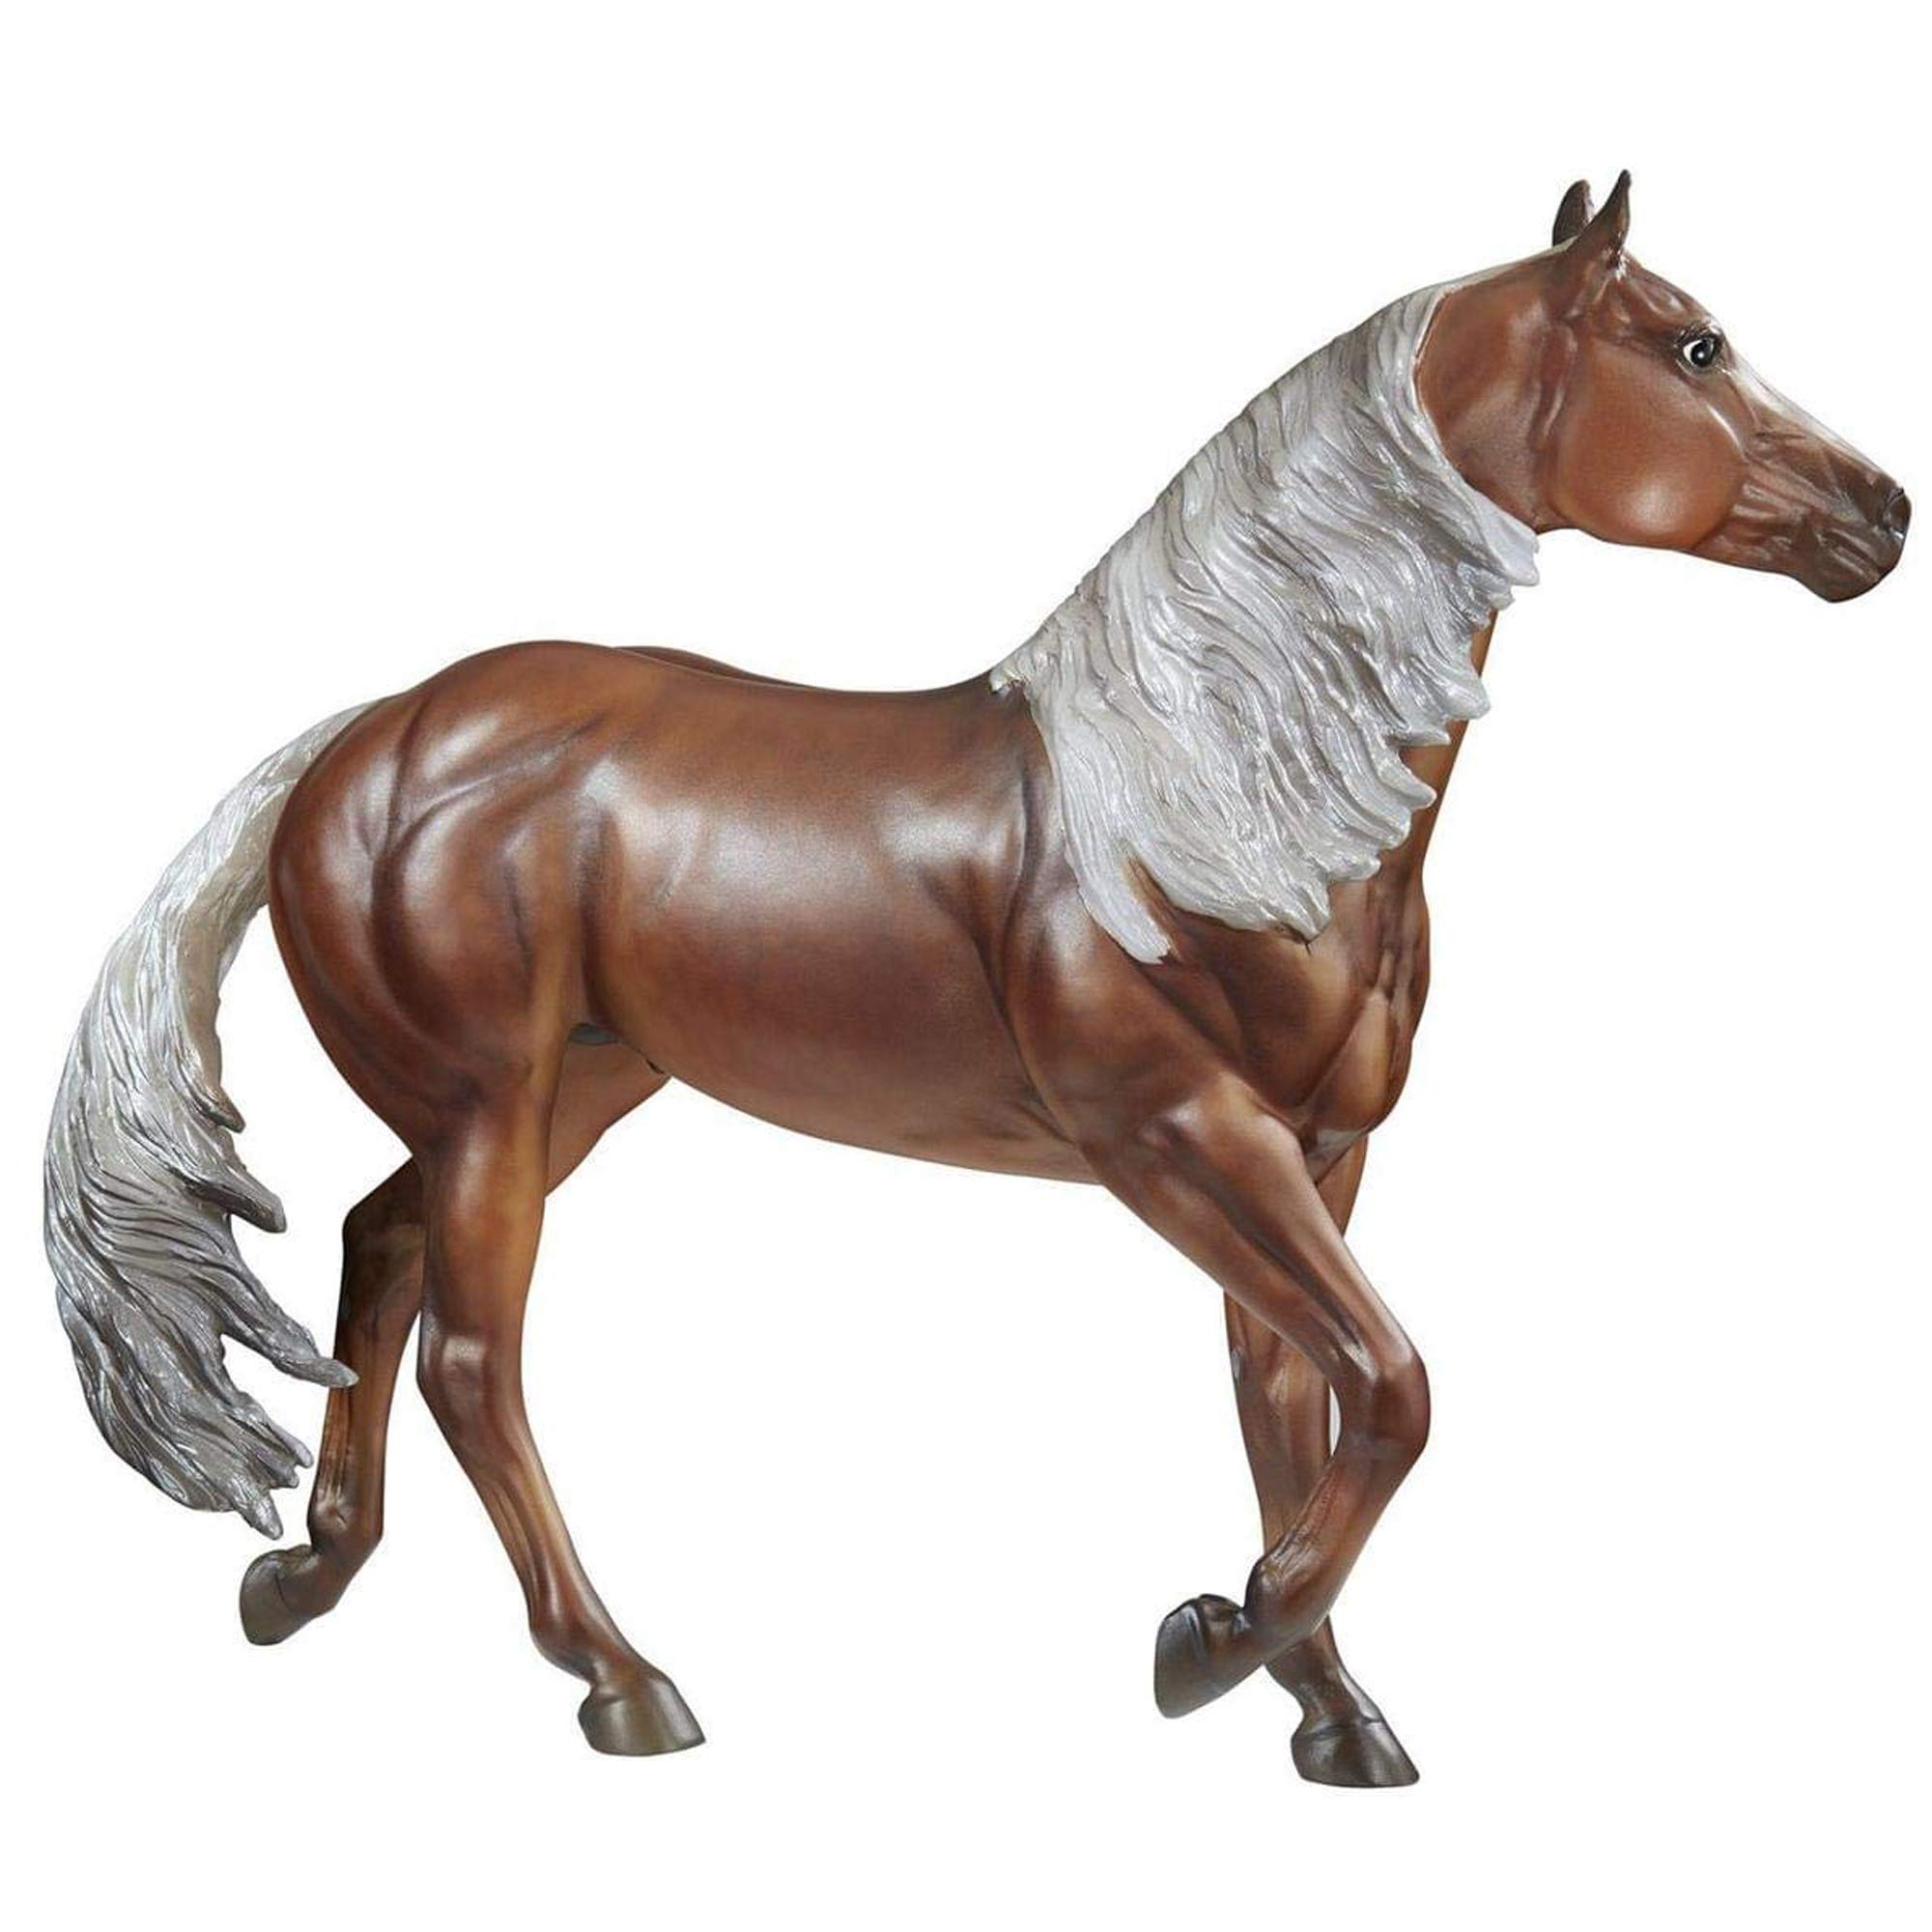 Breyer Latigo Dun It 1:9 Scale Collector Horse